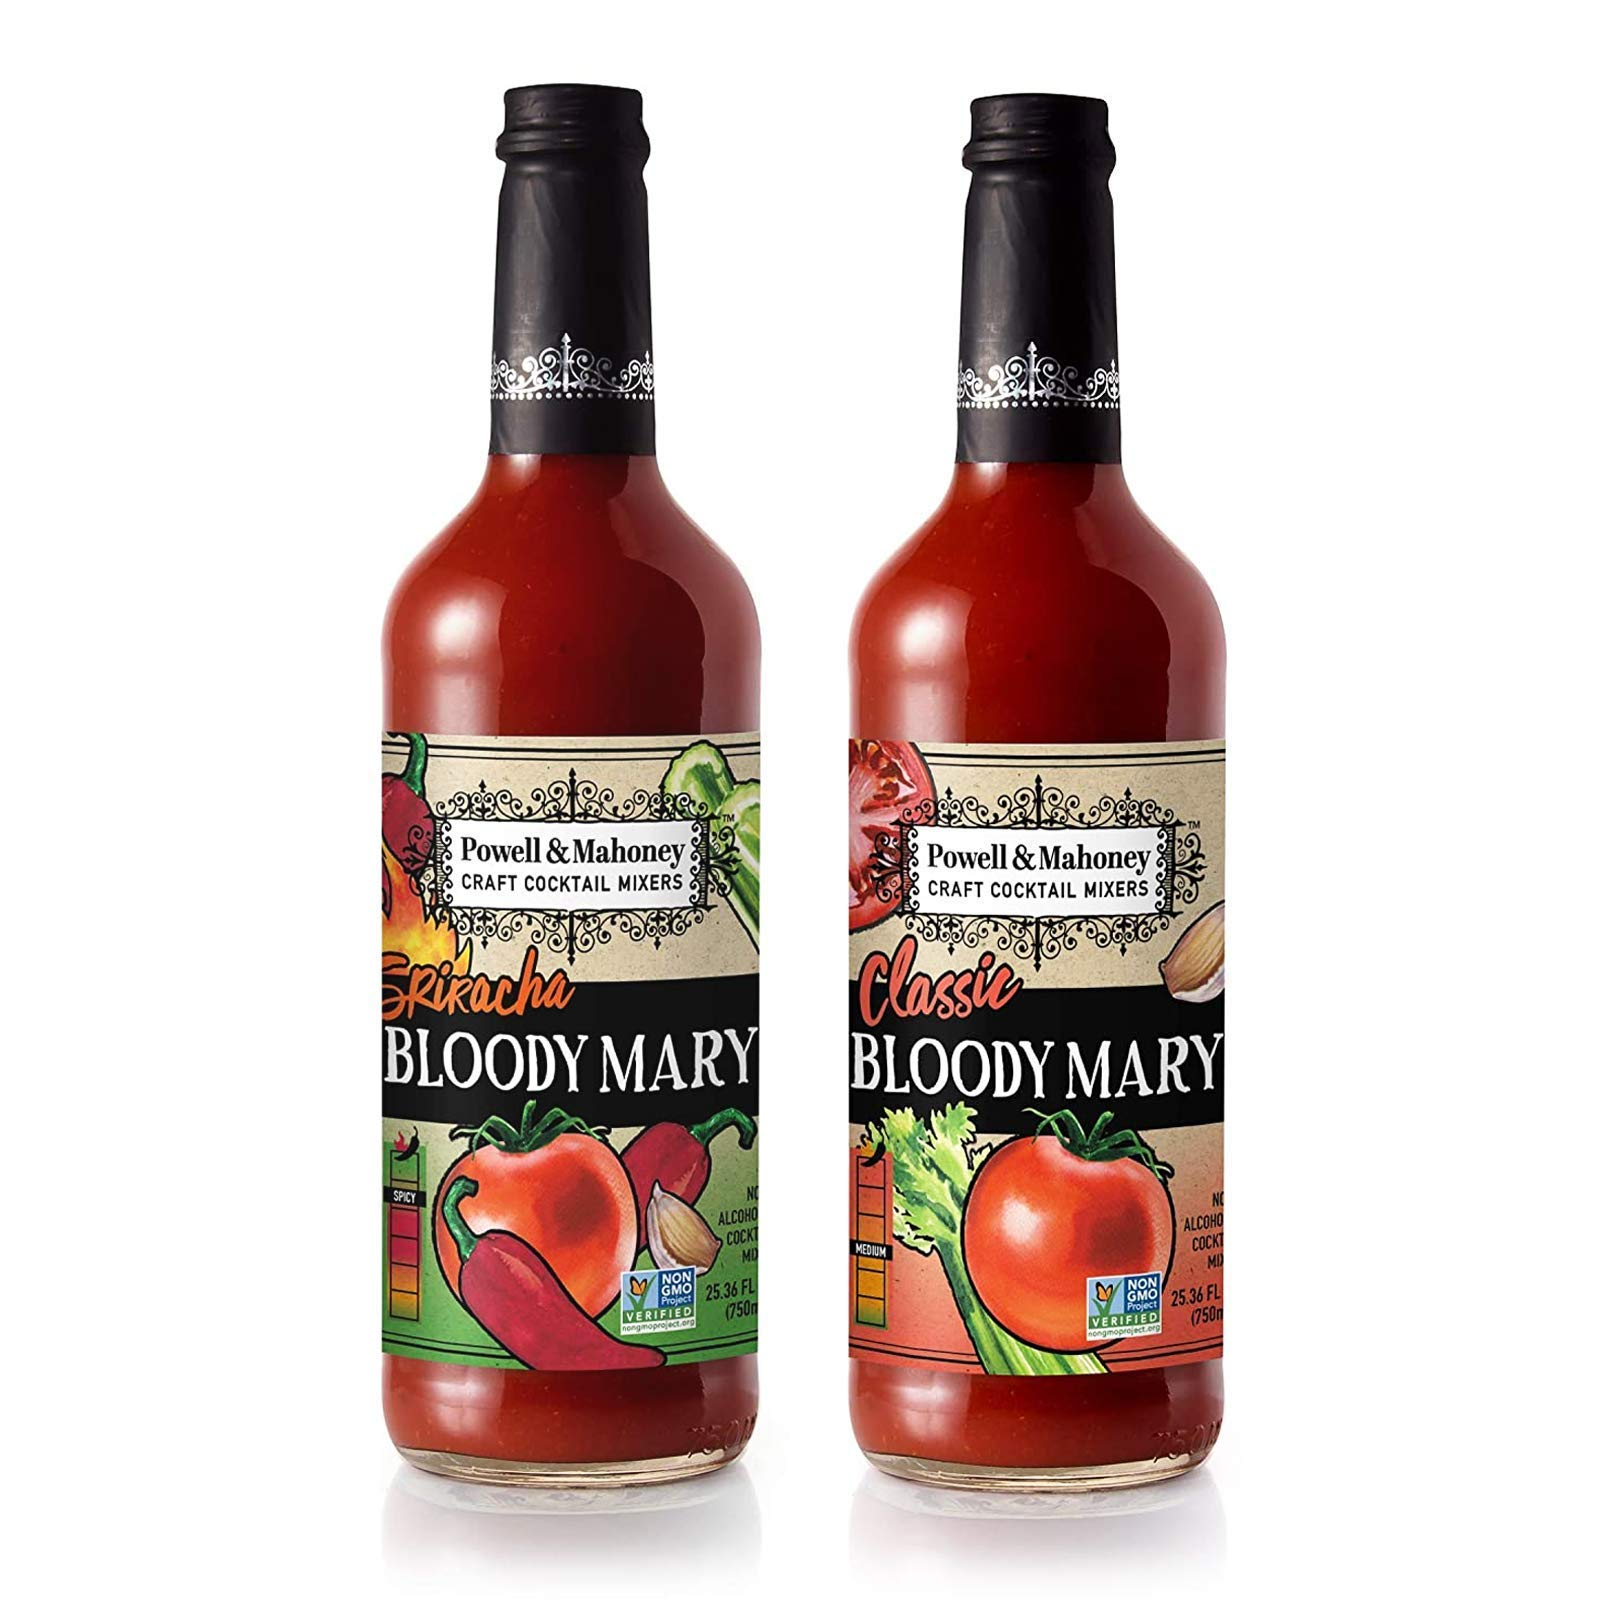 Powell and Mahoney Craft Cocktail Mixers - Classic Bloody Mary and Sriracha Bloody Mary - Non-Alcoholic Cocktail Mix - 750ml - Non-GMO